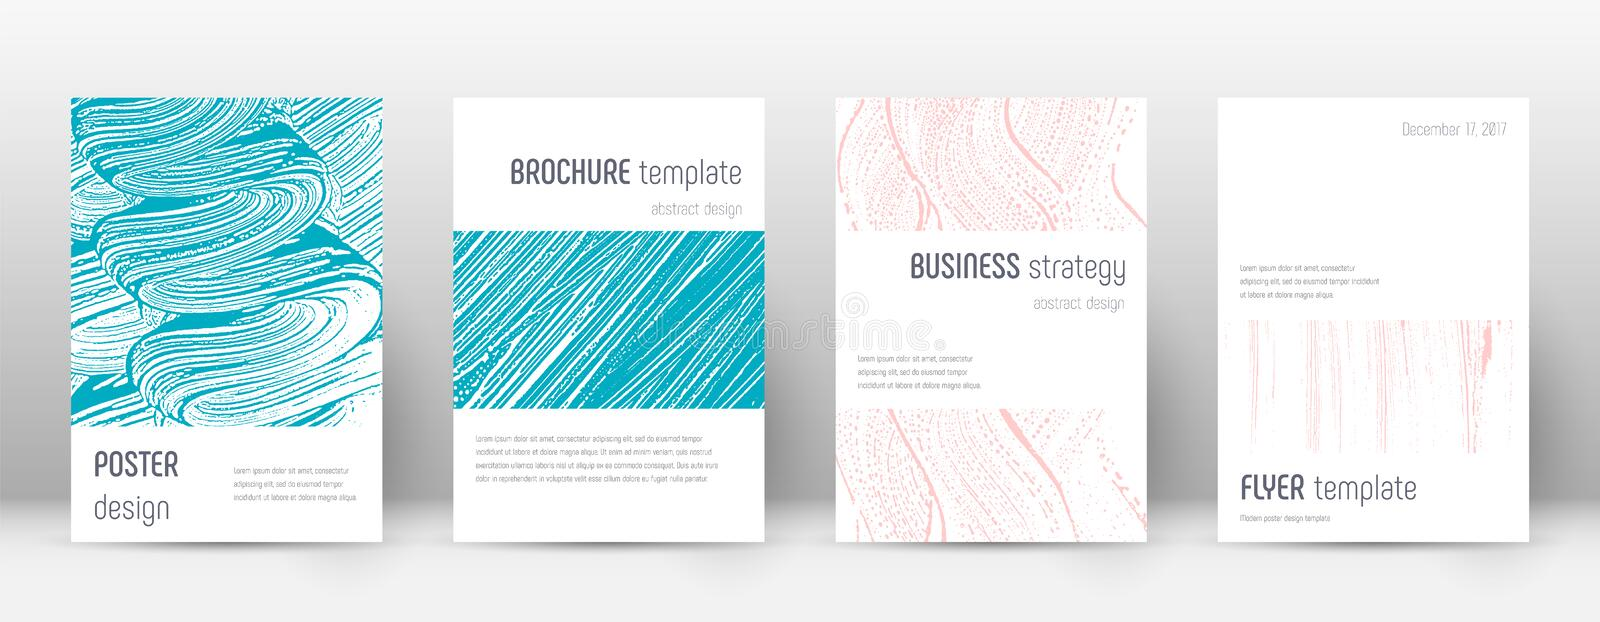 Cover page design template. Minimalistic brochure. Layout. Classic trendy abstract cover page. Pink and blue grunge texture background. Ravishing poster royalty free illustration